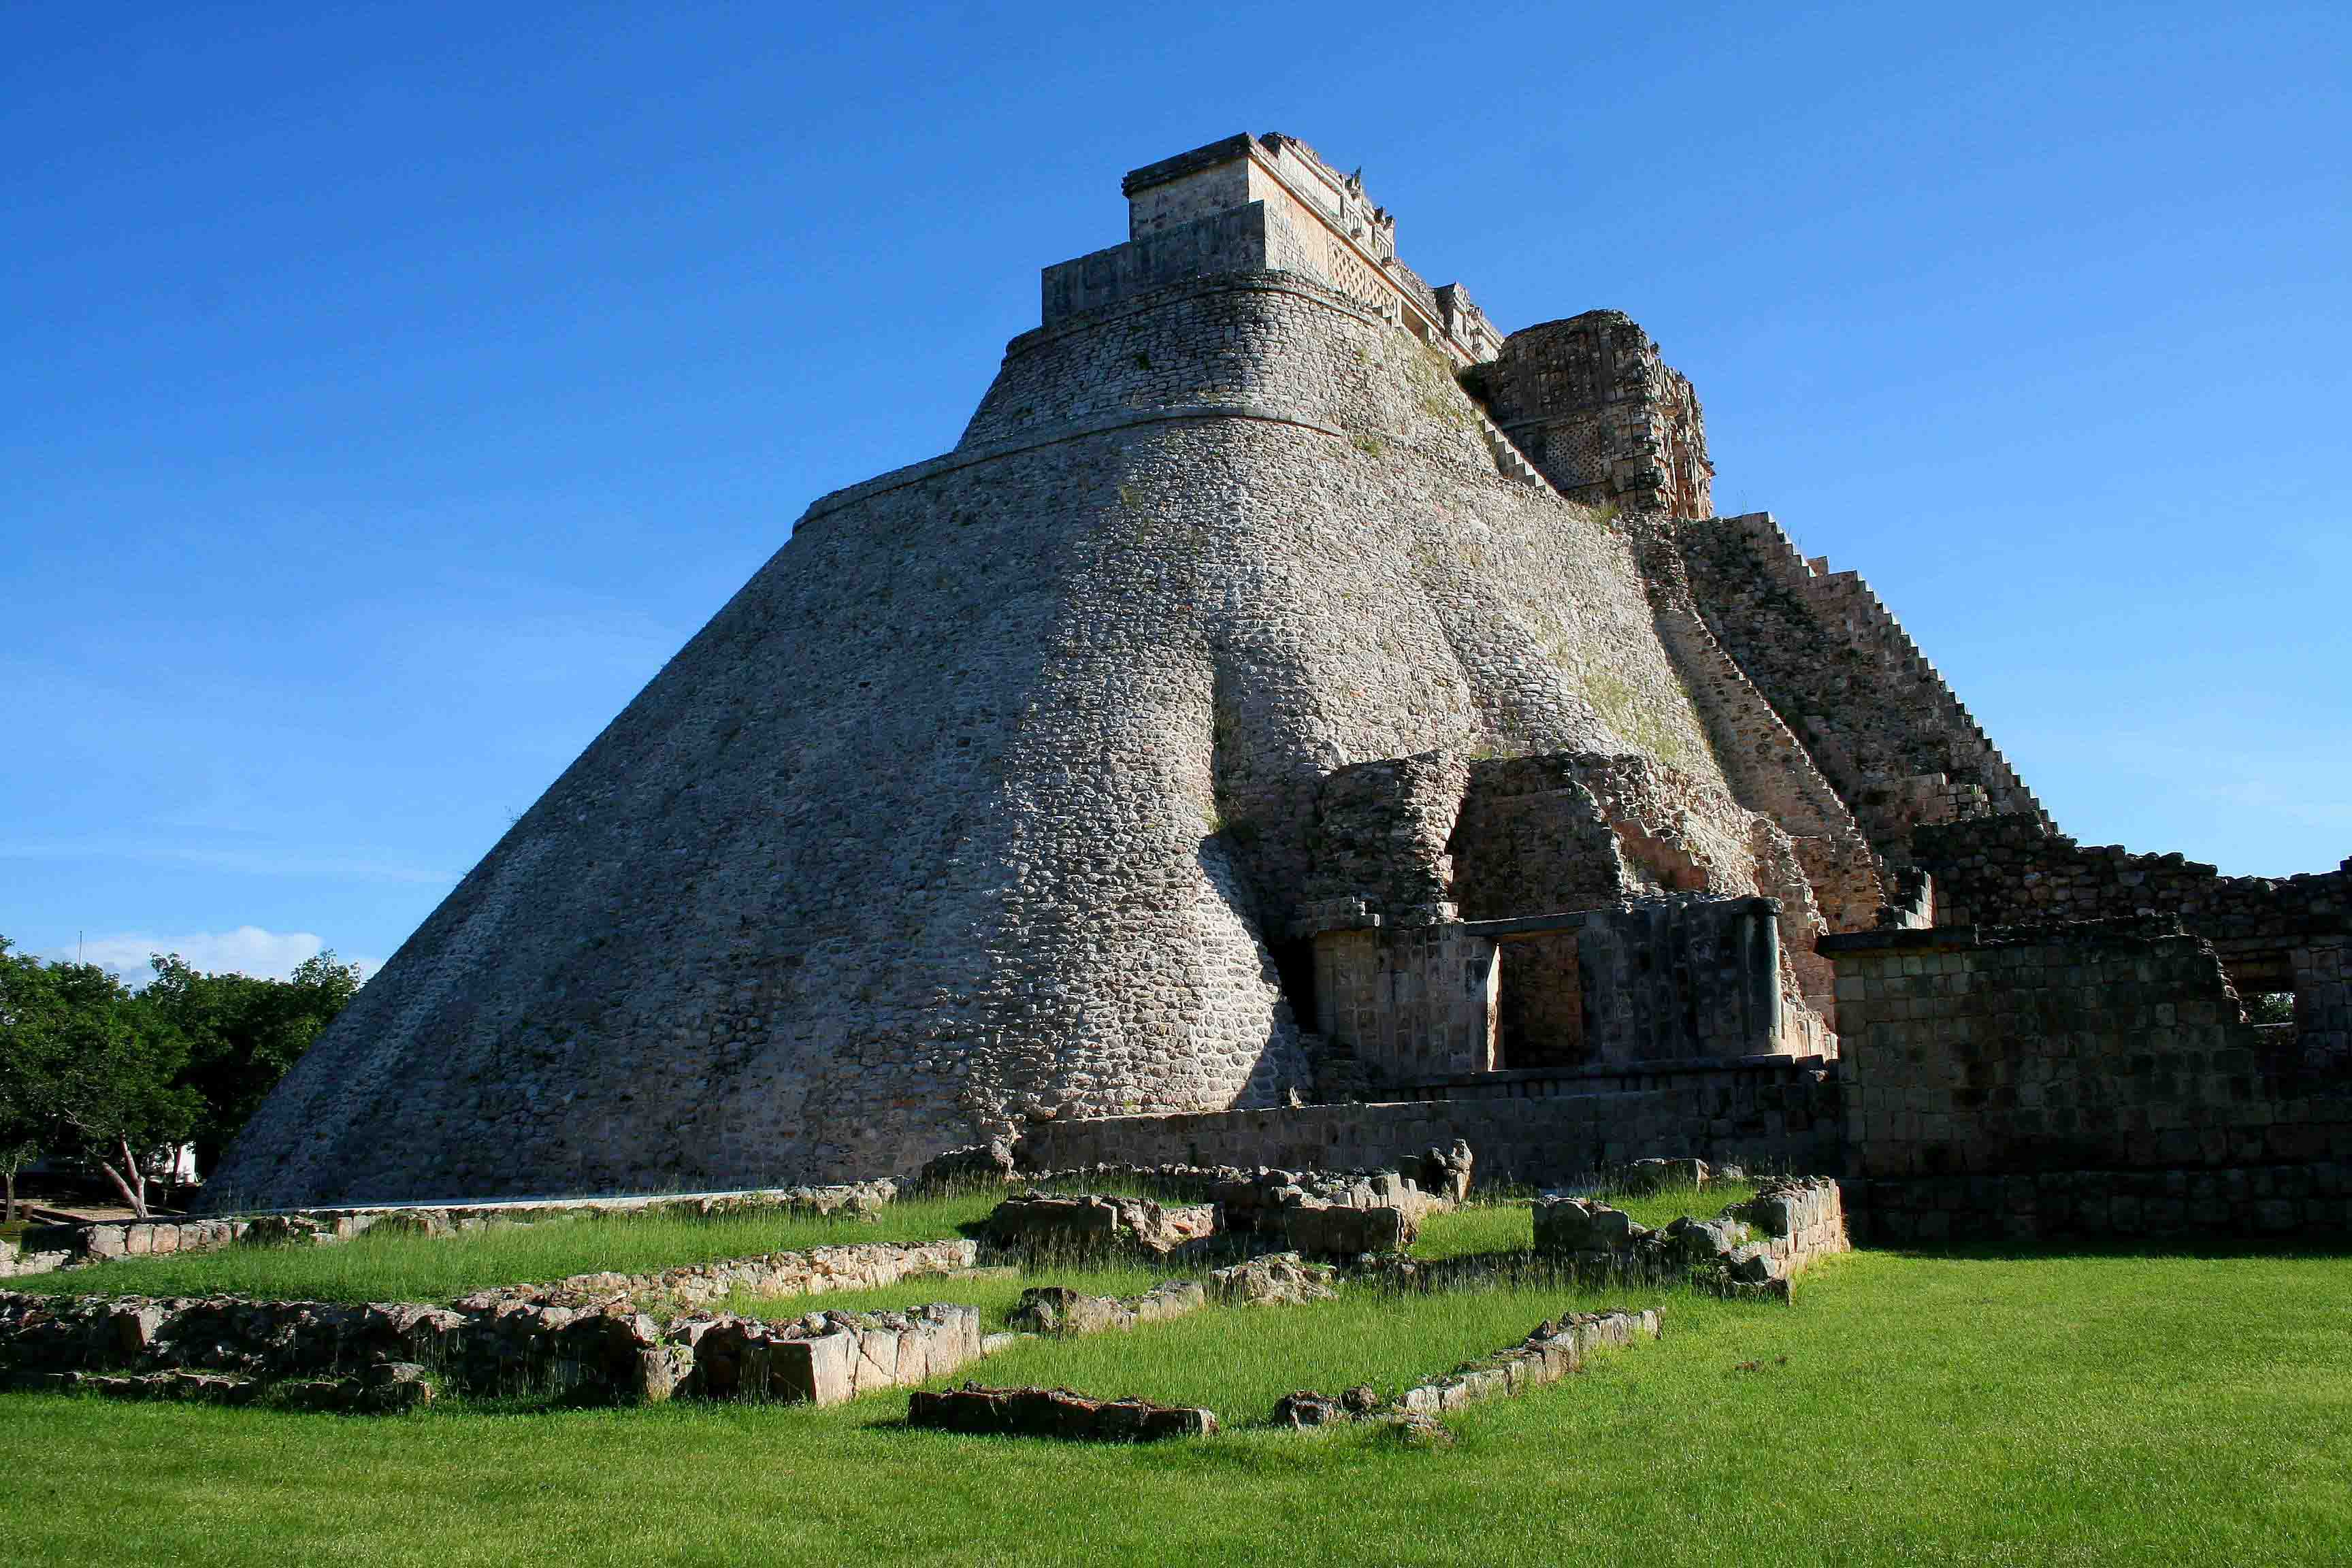 Pyramid of the Magician in Mexico